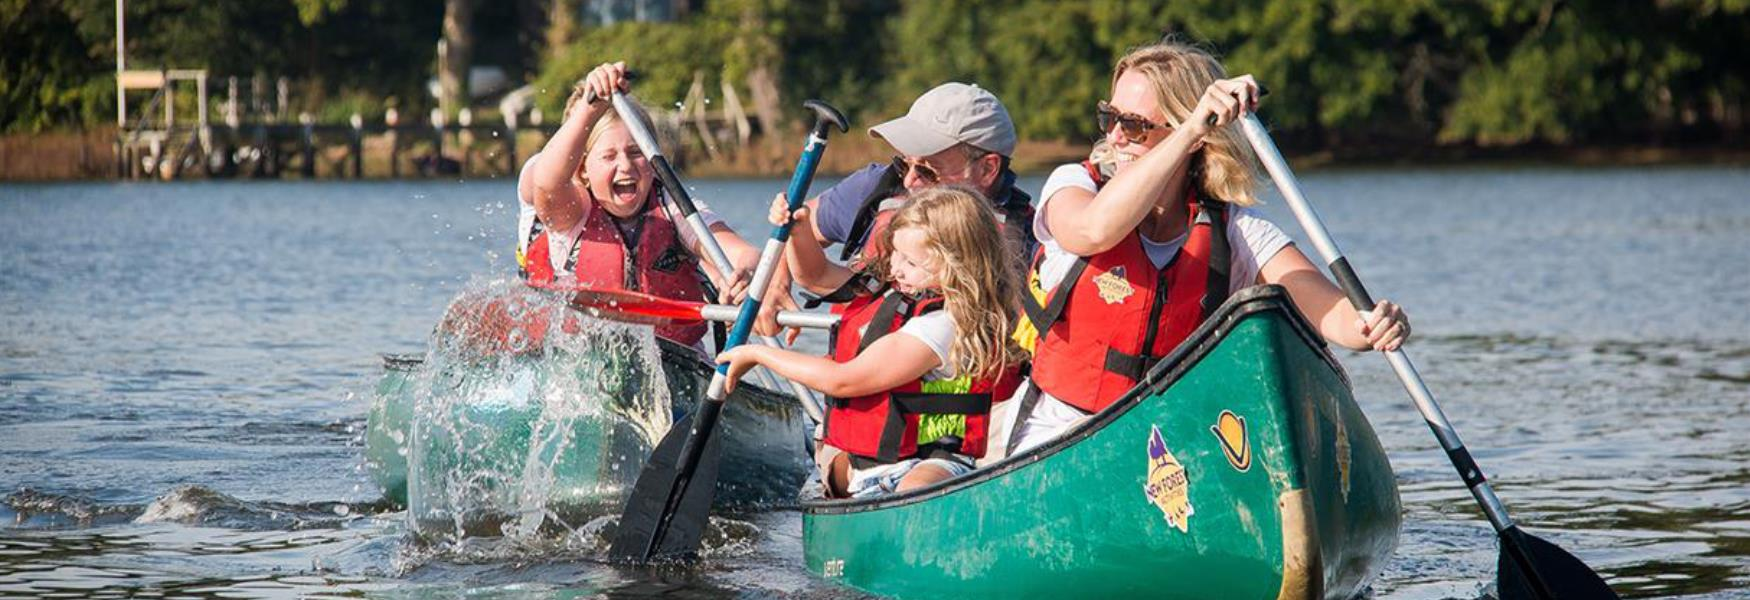 watersports/canoeing down beaulieu river with new forest activities in the new forest